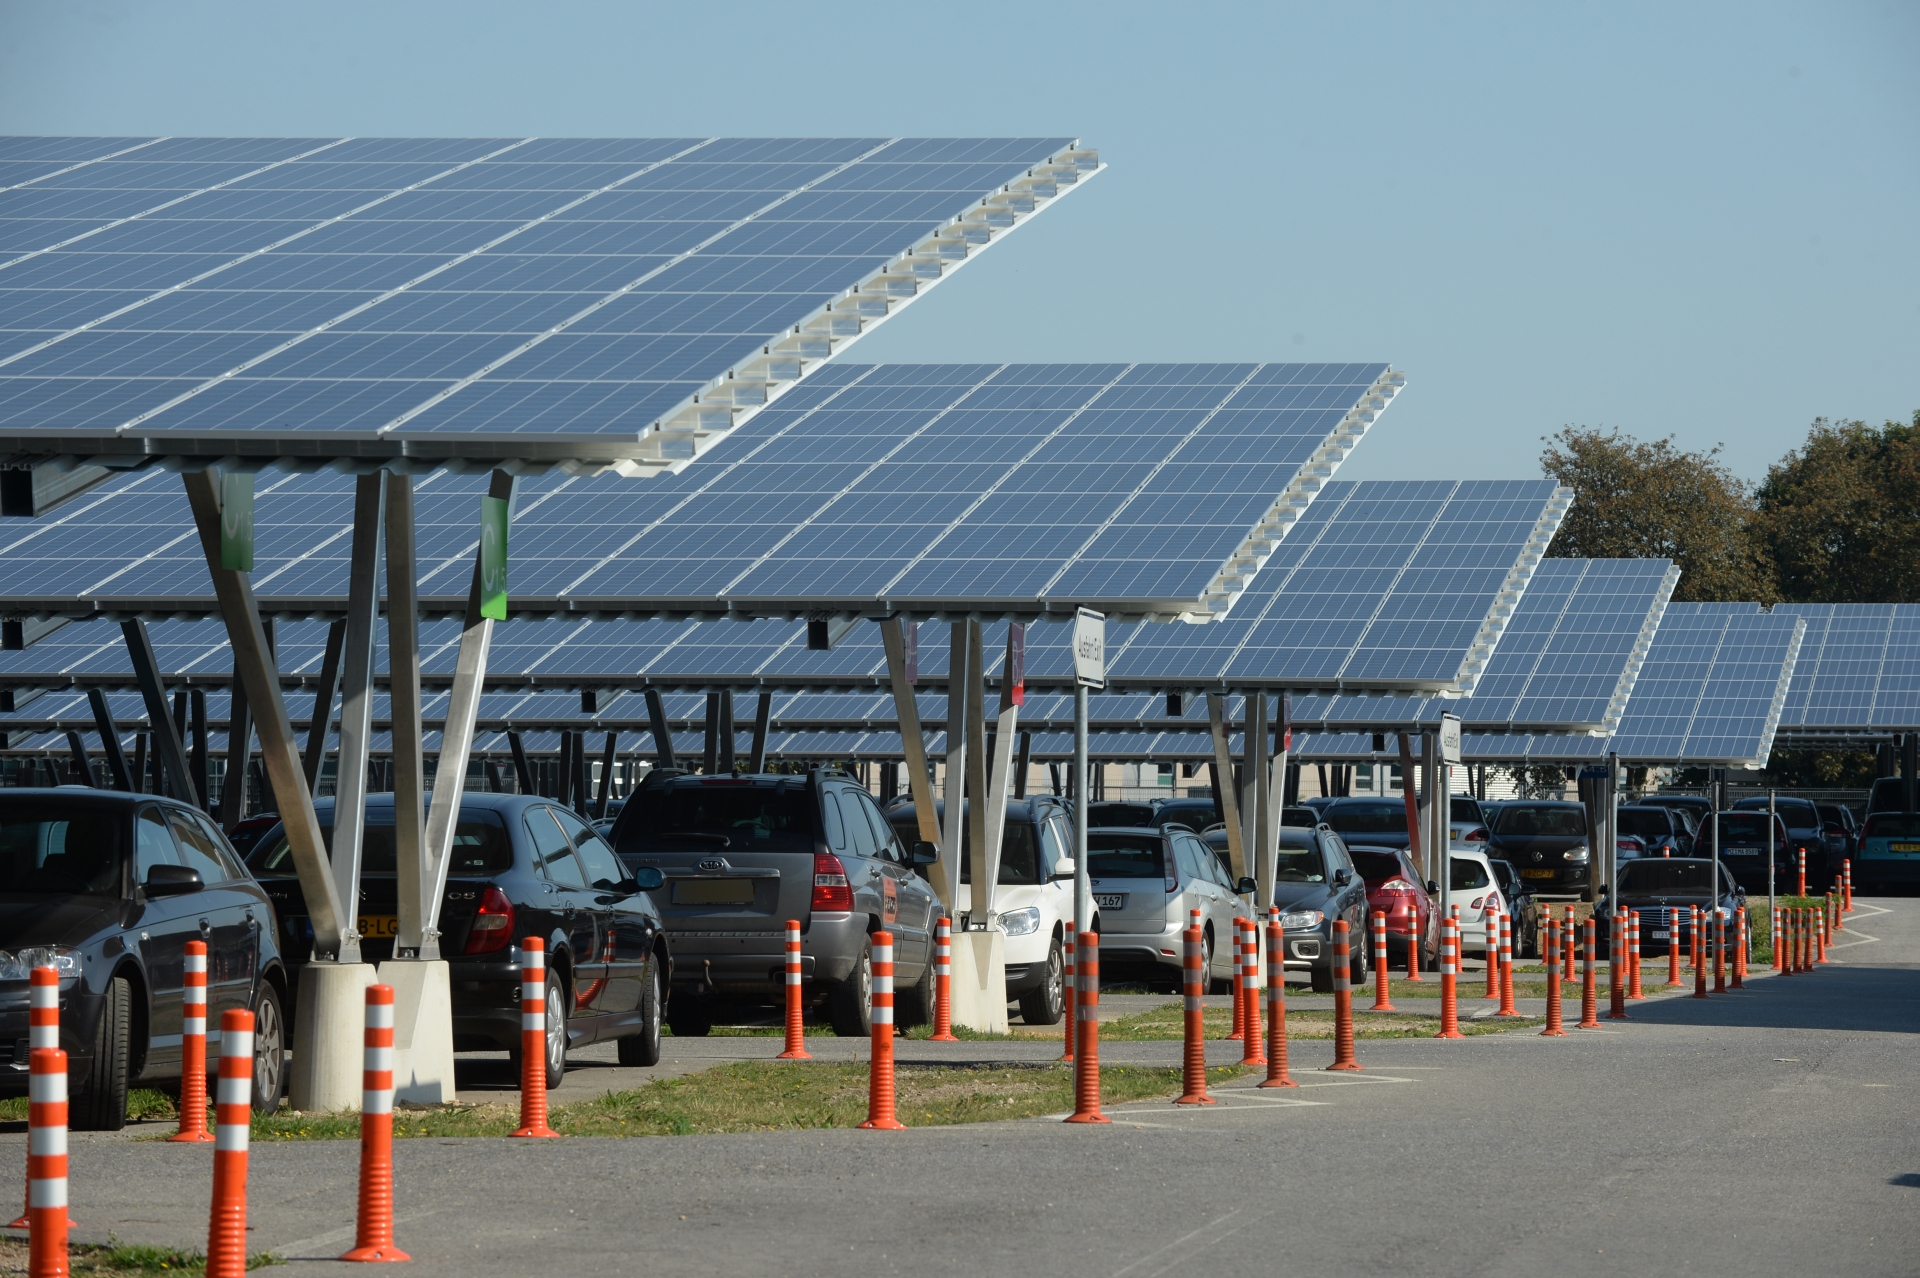 Karpot 4 Mw Solar Carports For Weeze Airport Opened | Sun & Wind Energy